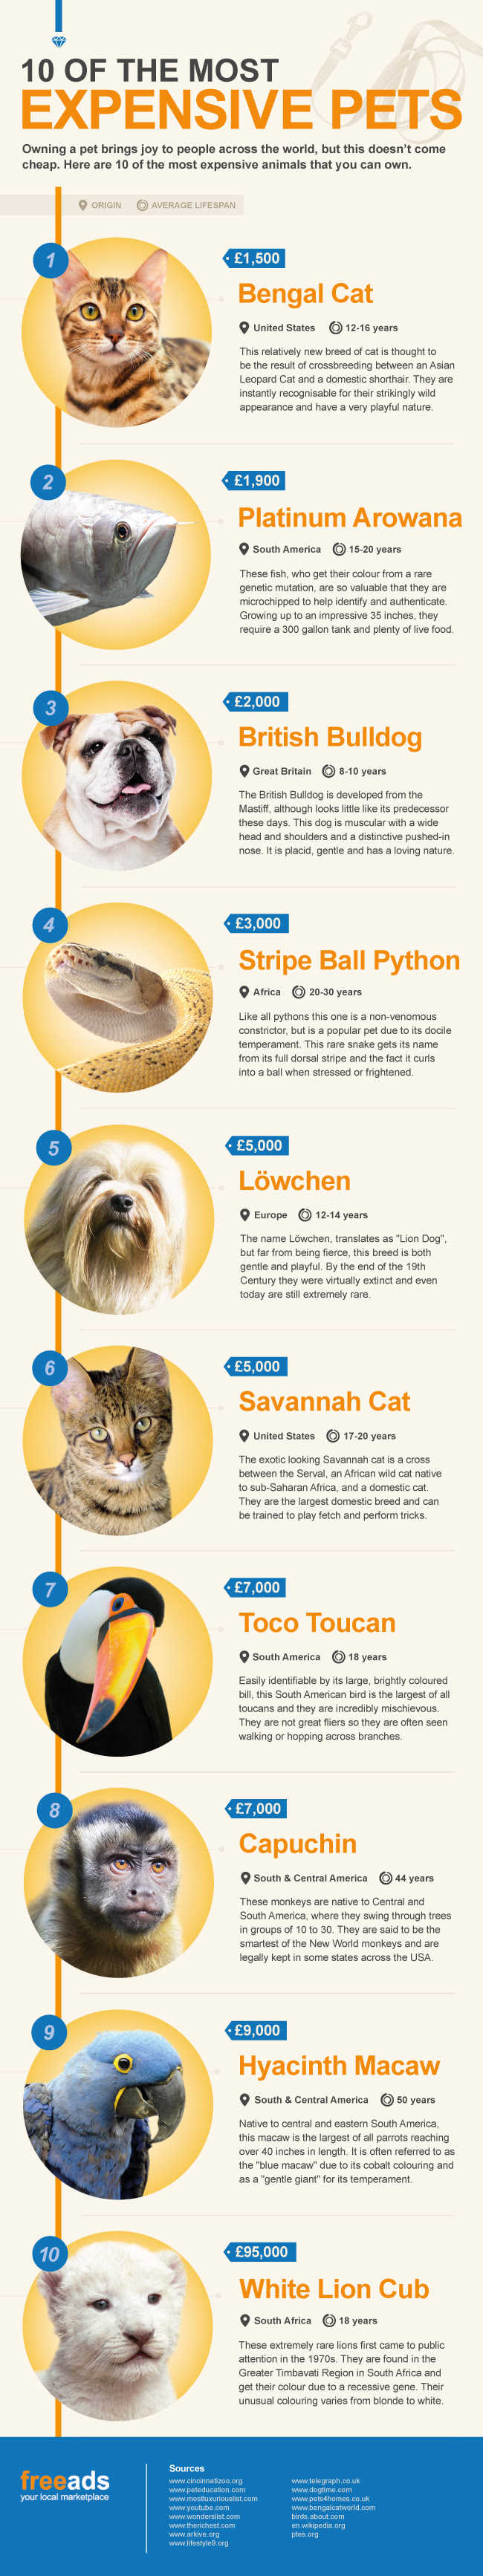 10 of the most expensive pets